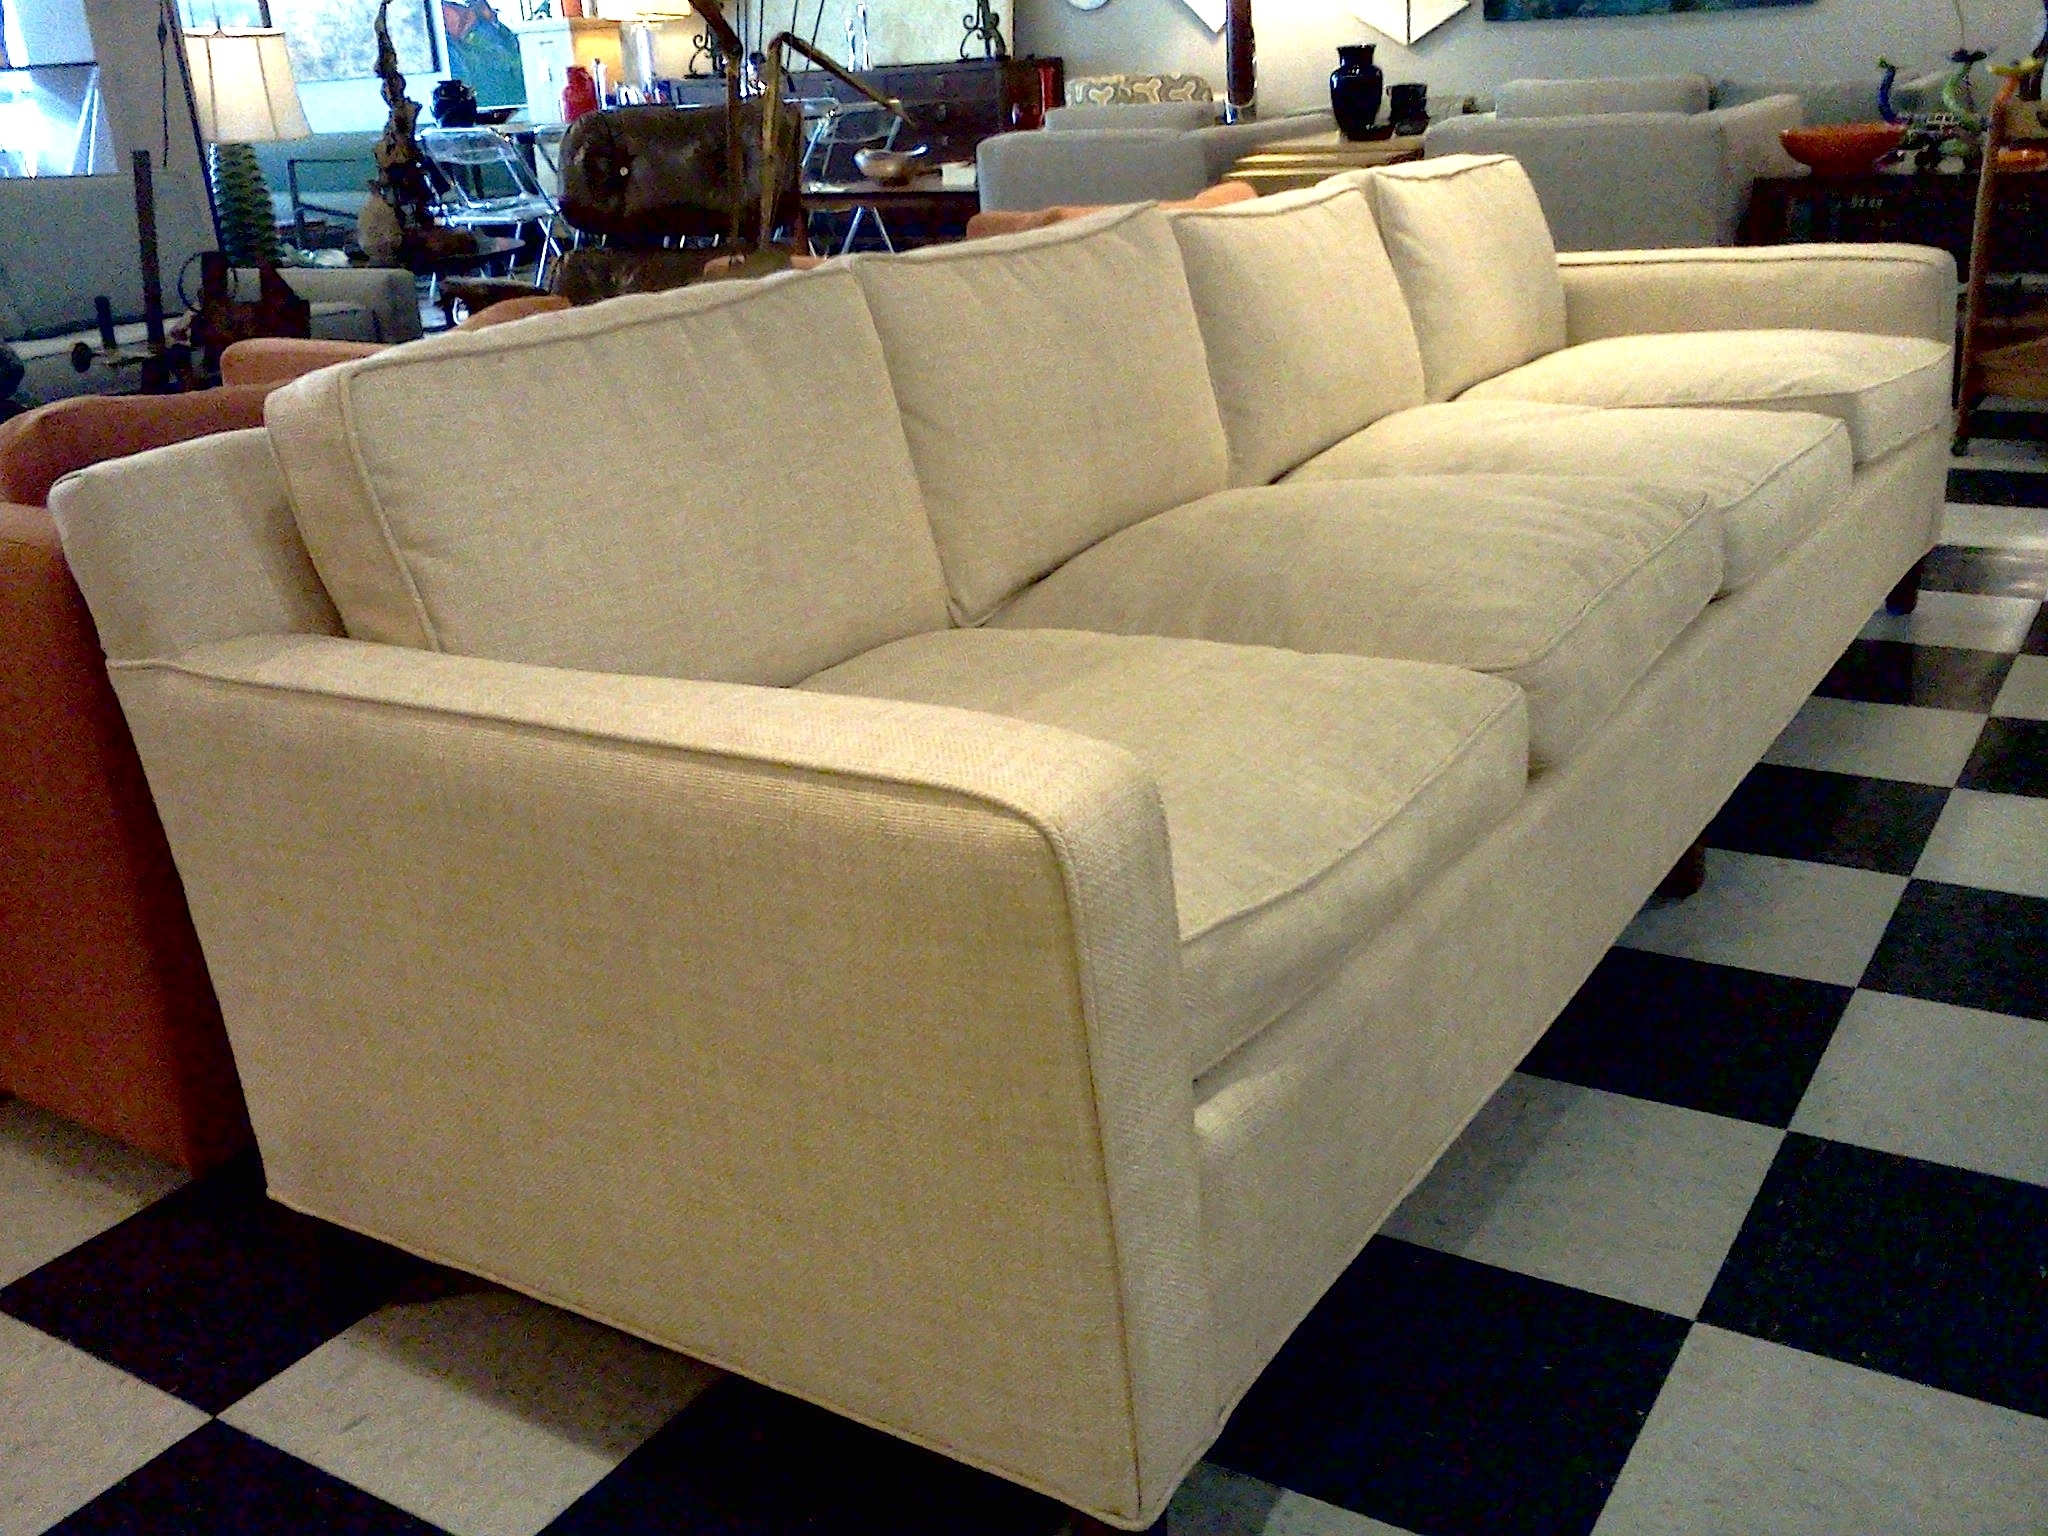 Sofa : Down Wrapped Sectional Sofa Red Sofa Rattan Sofa Moroccan With Down Filled Sofas (View 6 of 10)